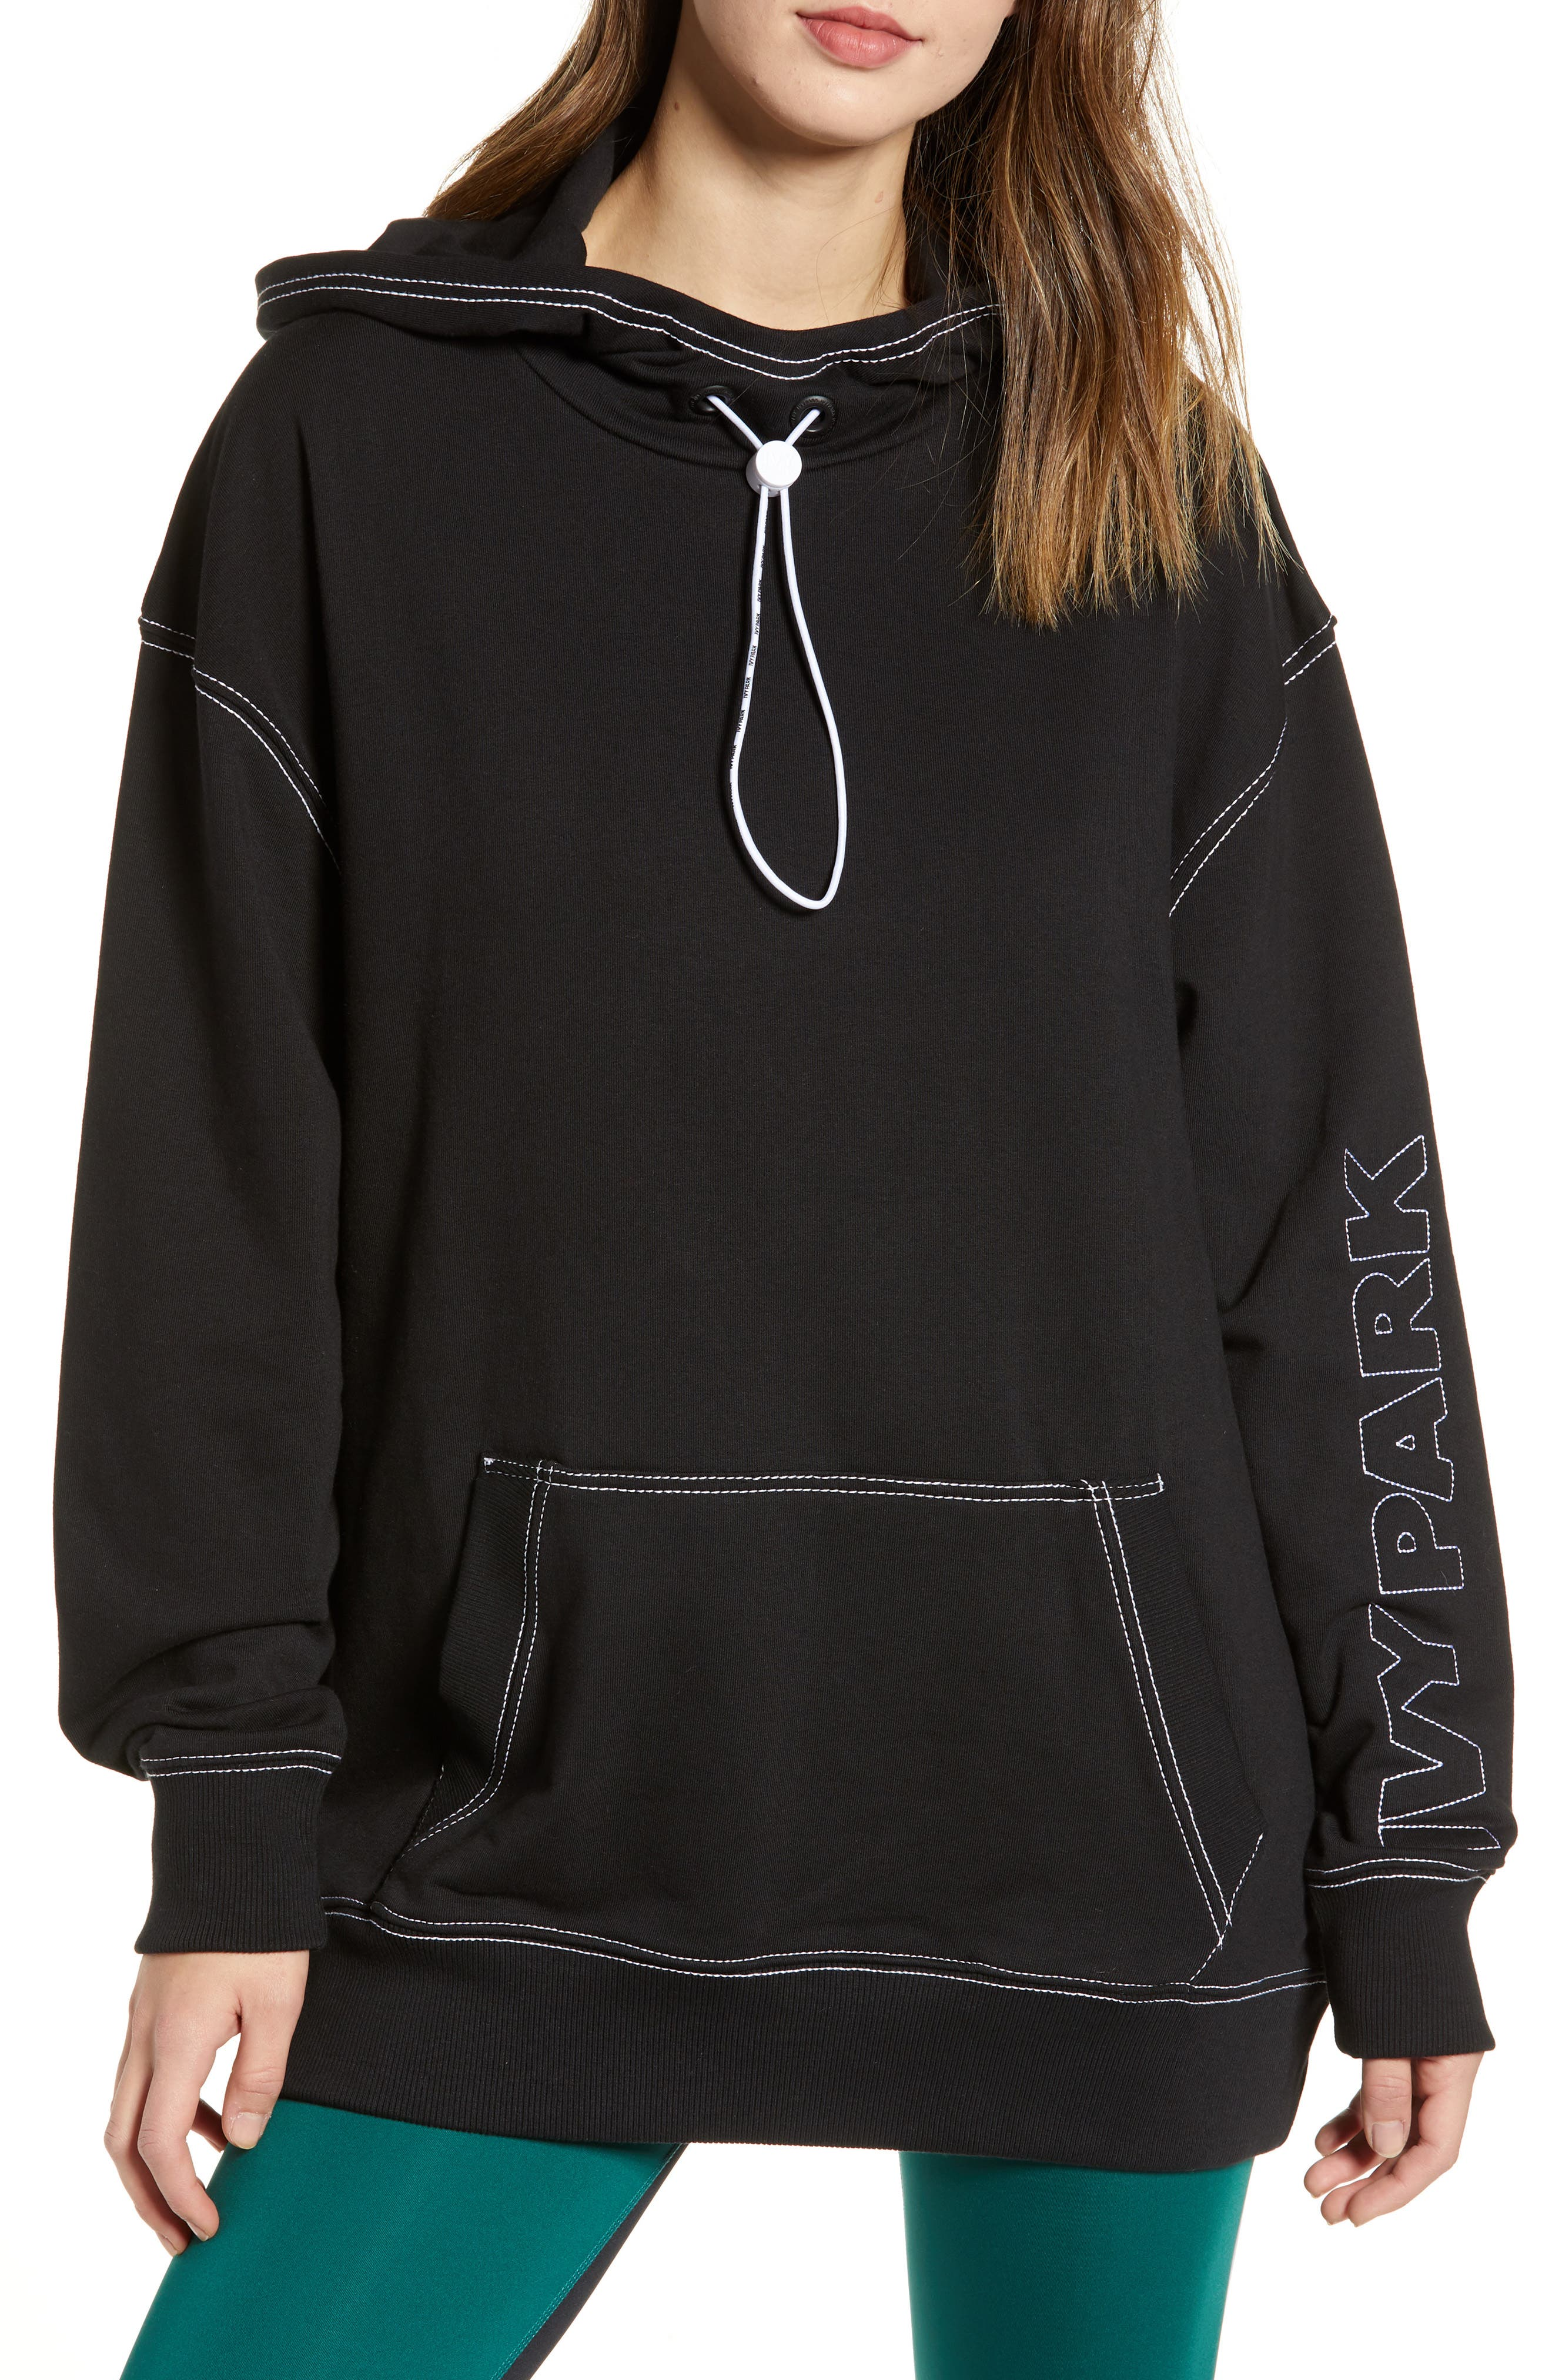 Stab Stitch Hoodie by Ivy Park®